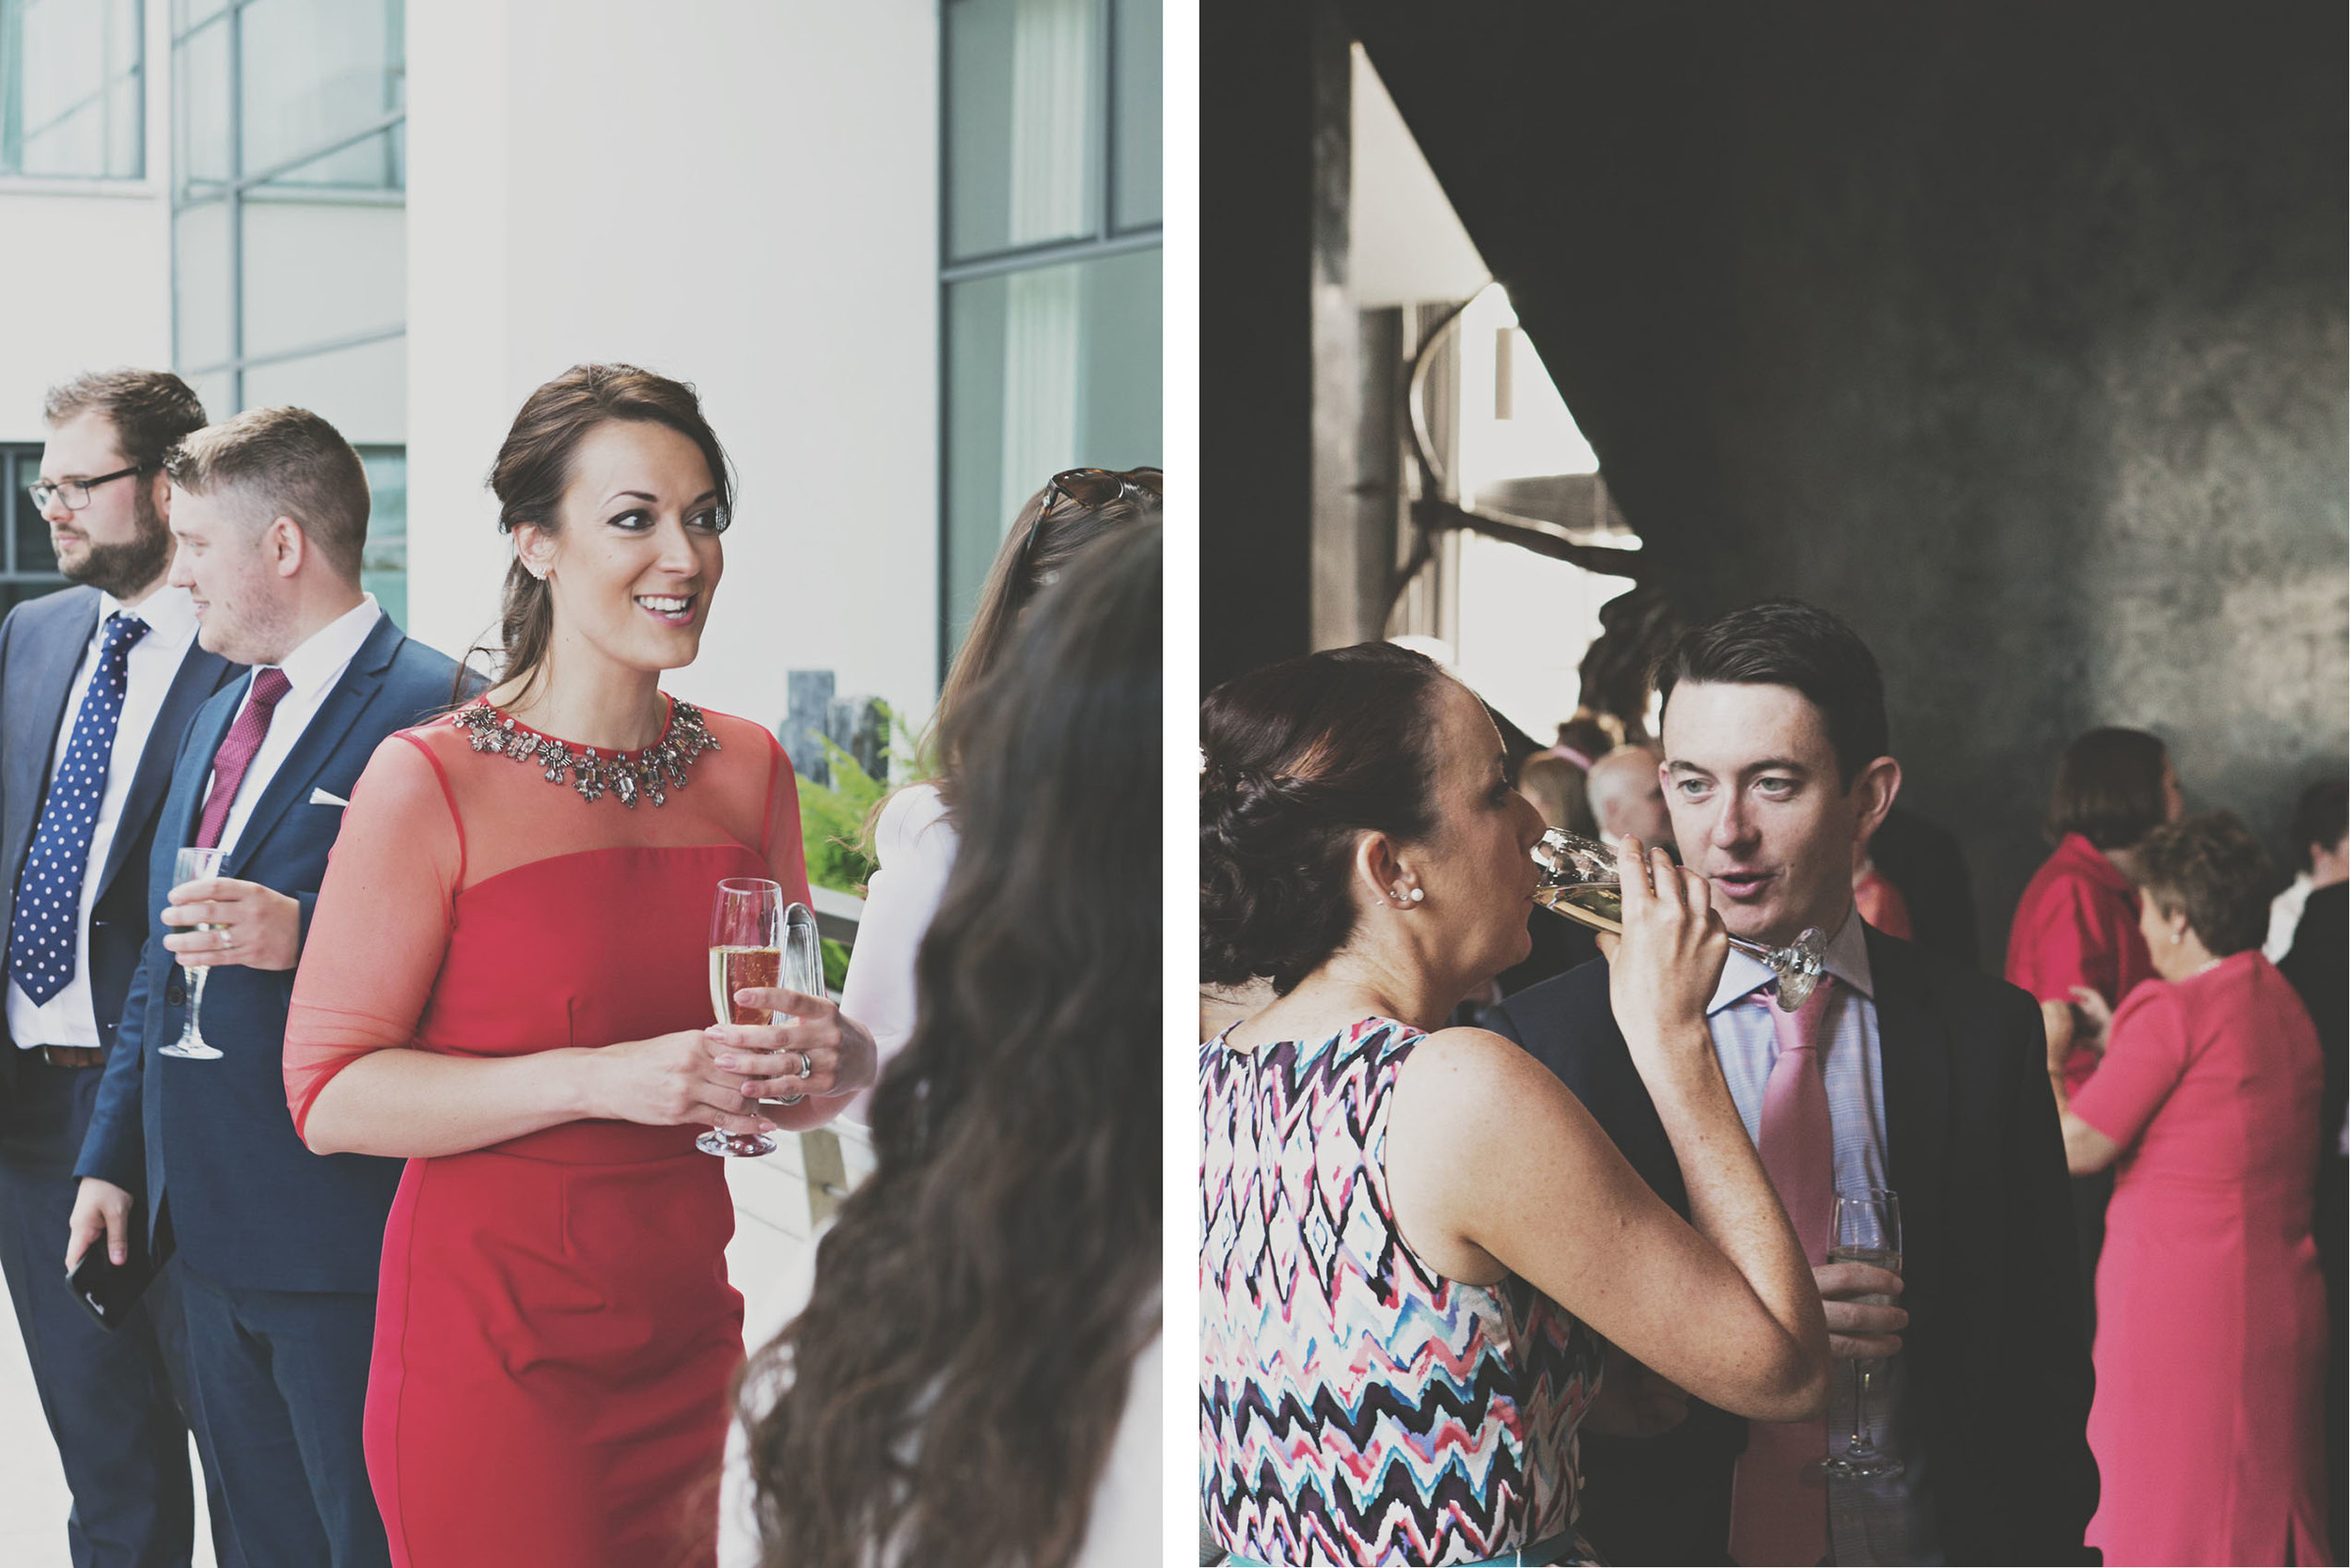 Julie & Matt's Seafield Wedding by Studio33weddings 101.jpg